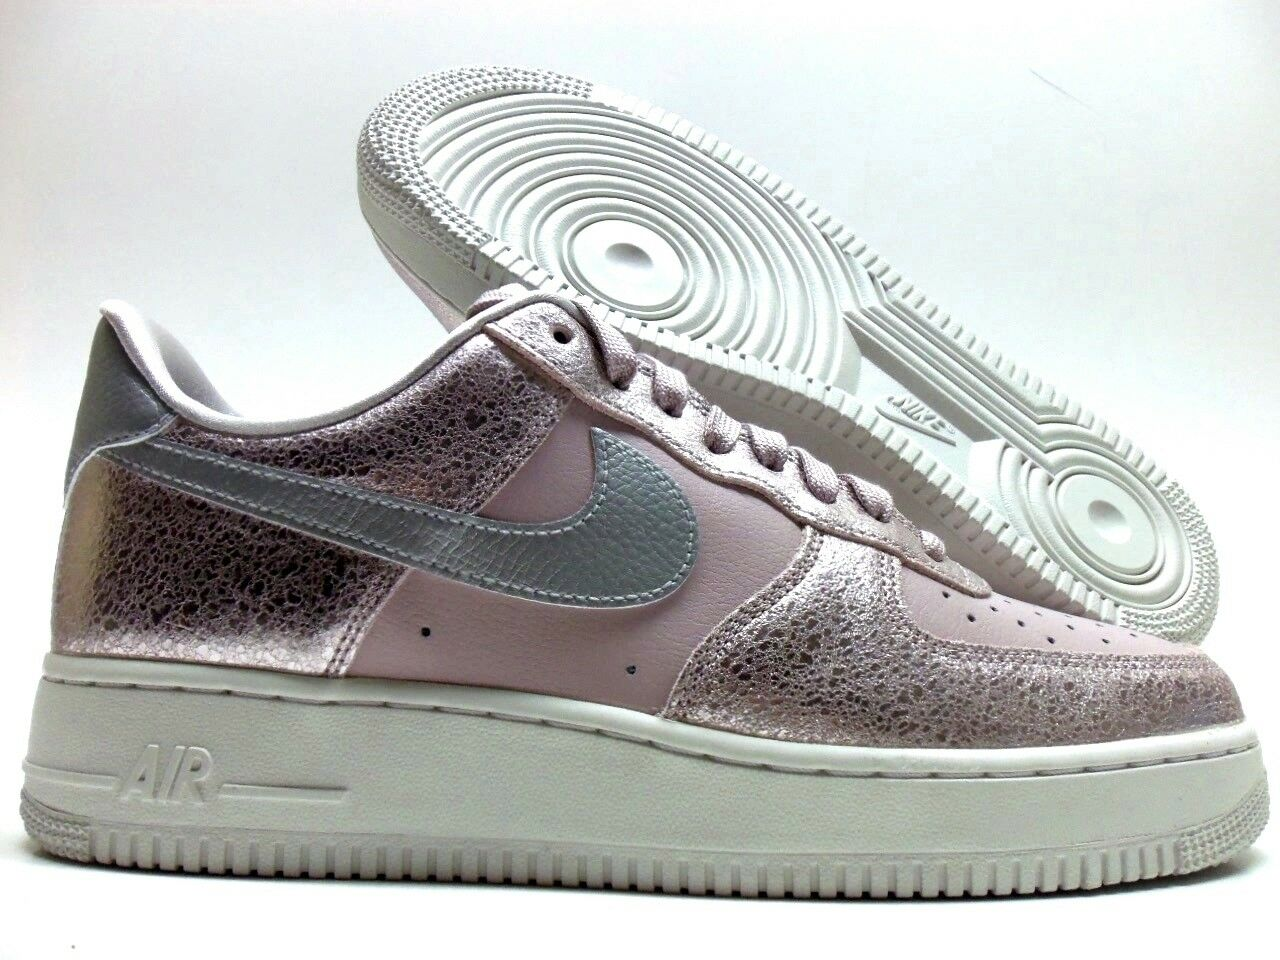 NIKE AIR FORCE 1 '07 PRM PARTICLE ROSE SIZE WOMEN'S 10.5/MEN'S 9 Price reduction